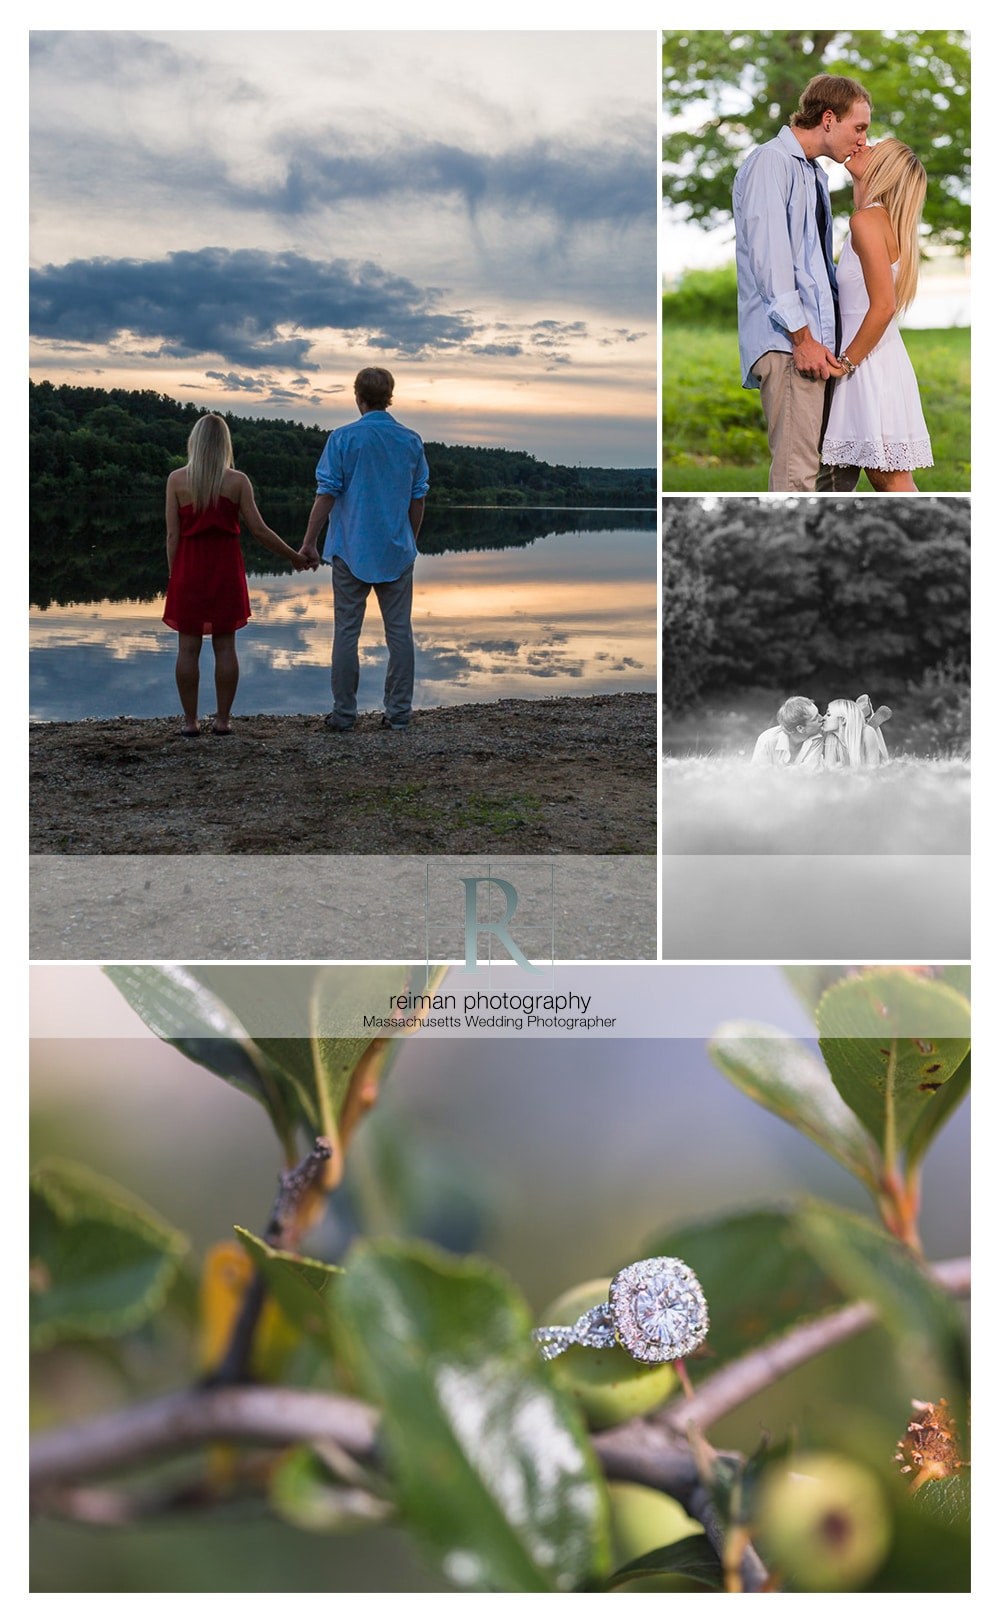 Old Stone Church, Engagement Session, Reiman Photography, Sunset, Evening